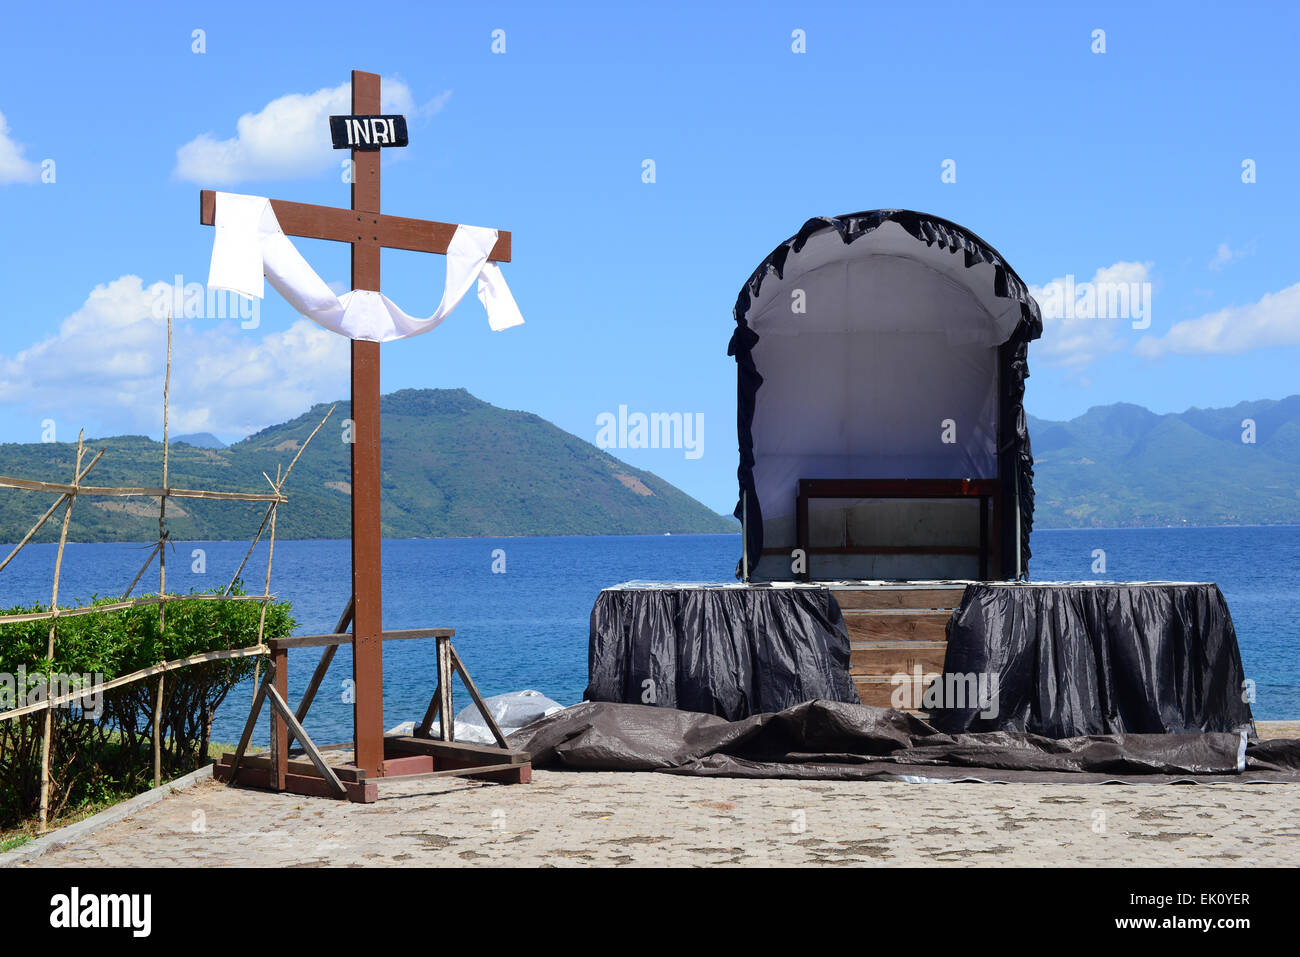 Larantuka, Indonesia. 3rd April, 2015. One of the  temporary altars in Via Dolorosa procession, a part of Good Friday - Stock Image